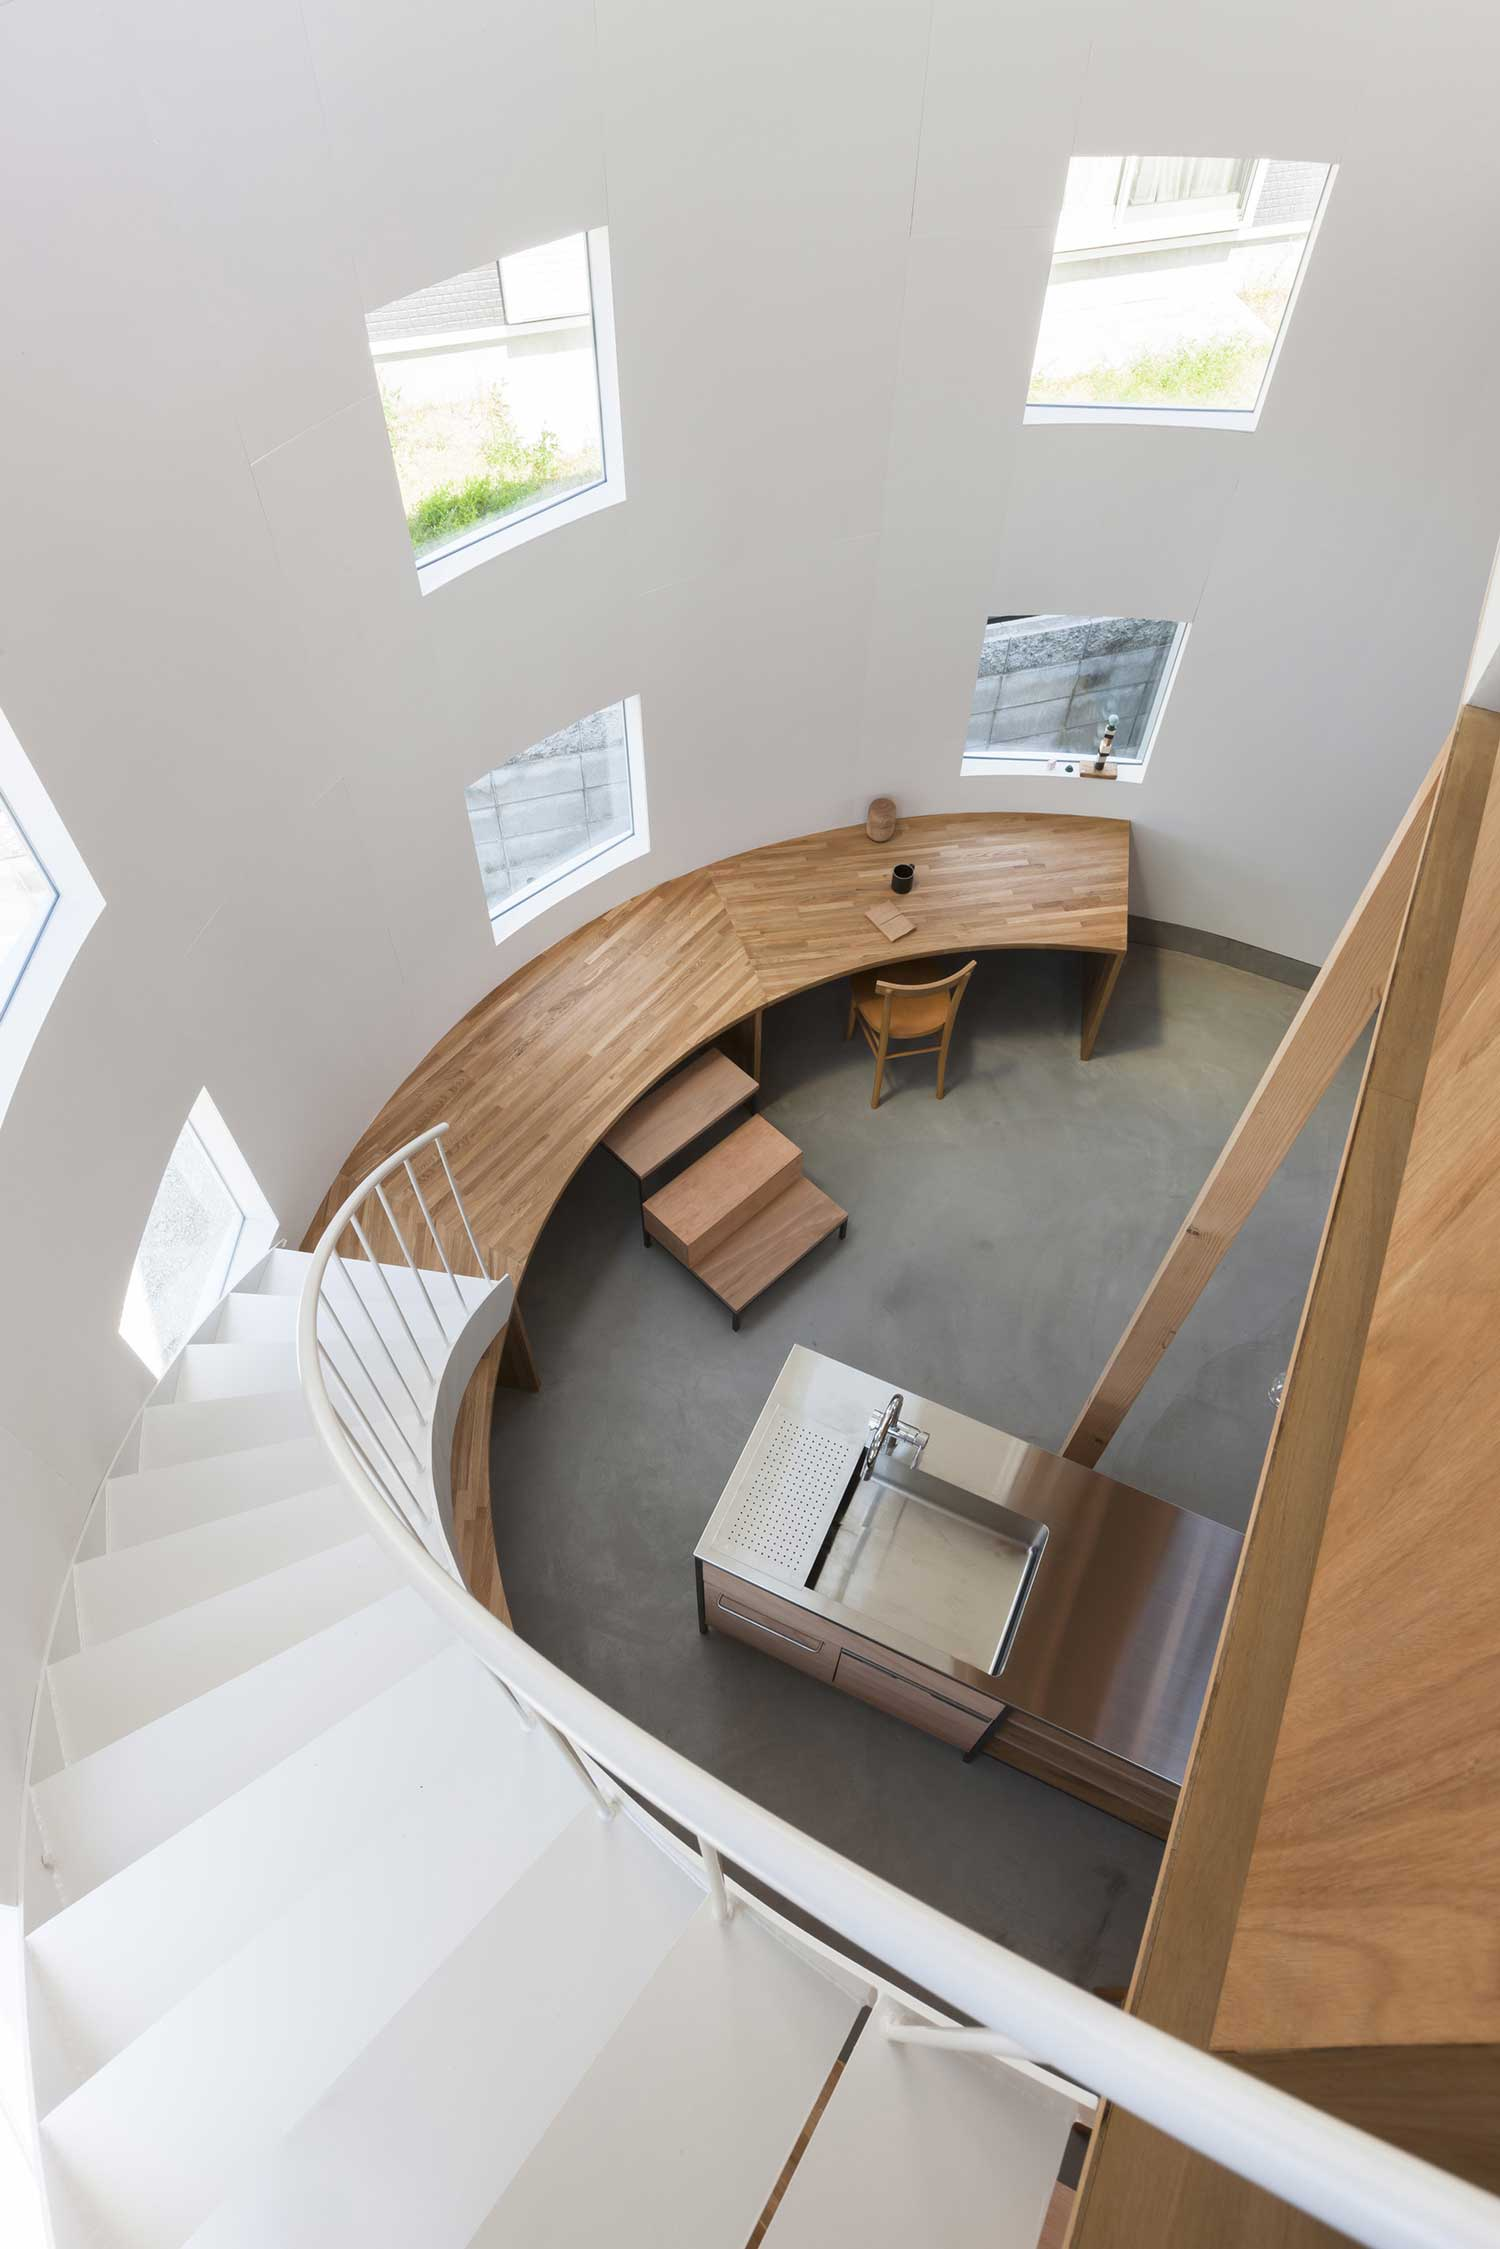 House in Hikone by Tato Architects | Yellowtrace